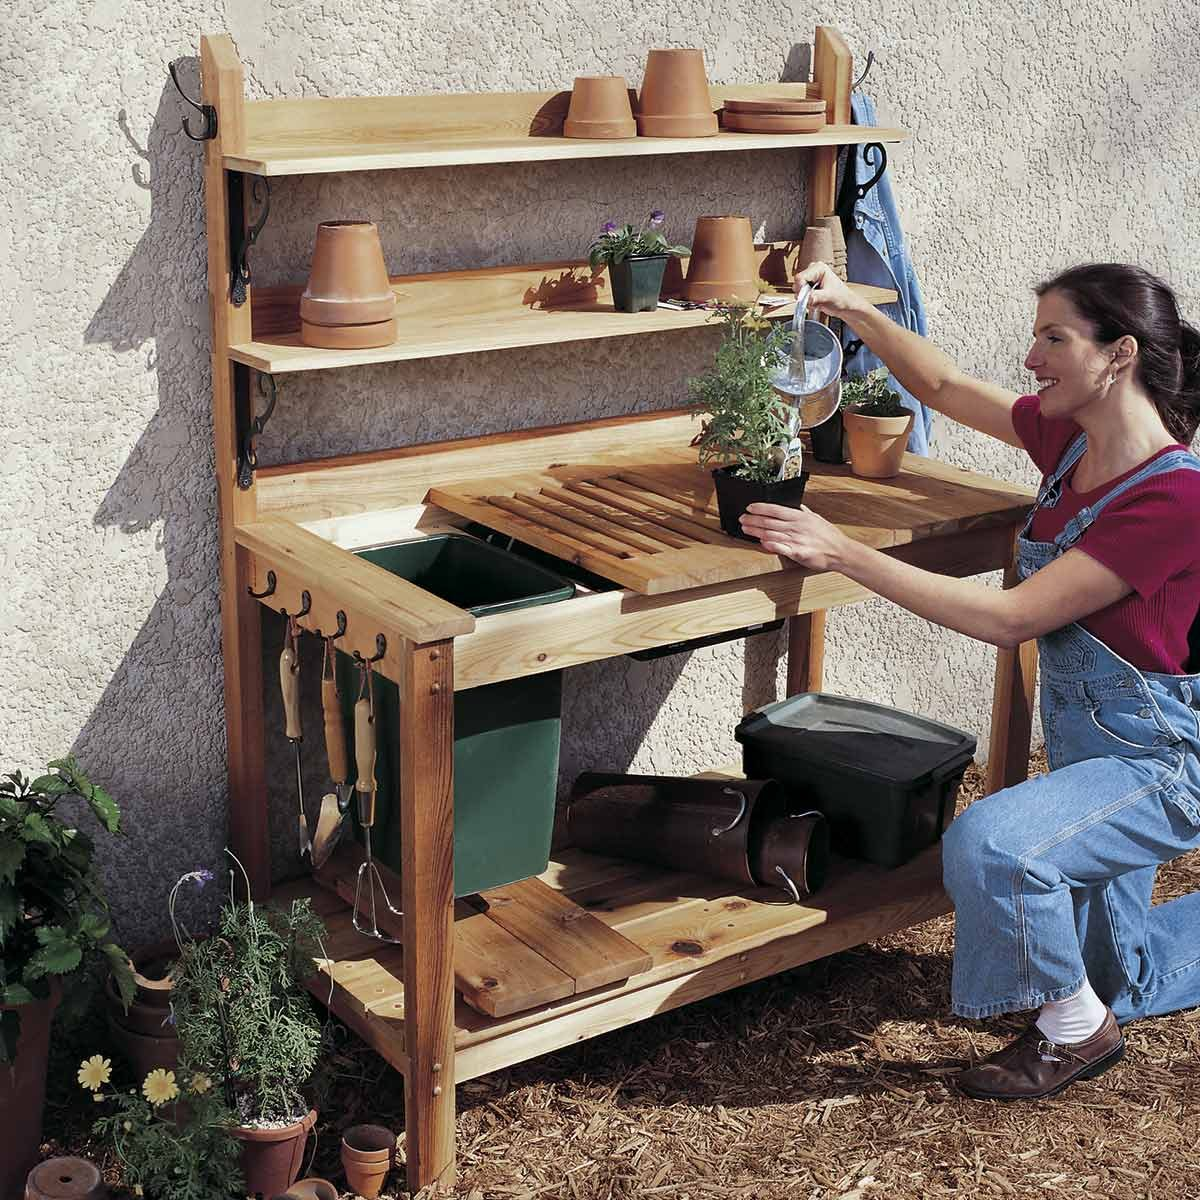 diy patio chairs graco high chair 6 in 1 15 awesome plans for furniture the family handyman cedar potting bench